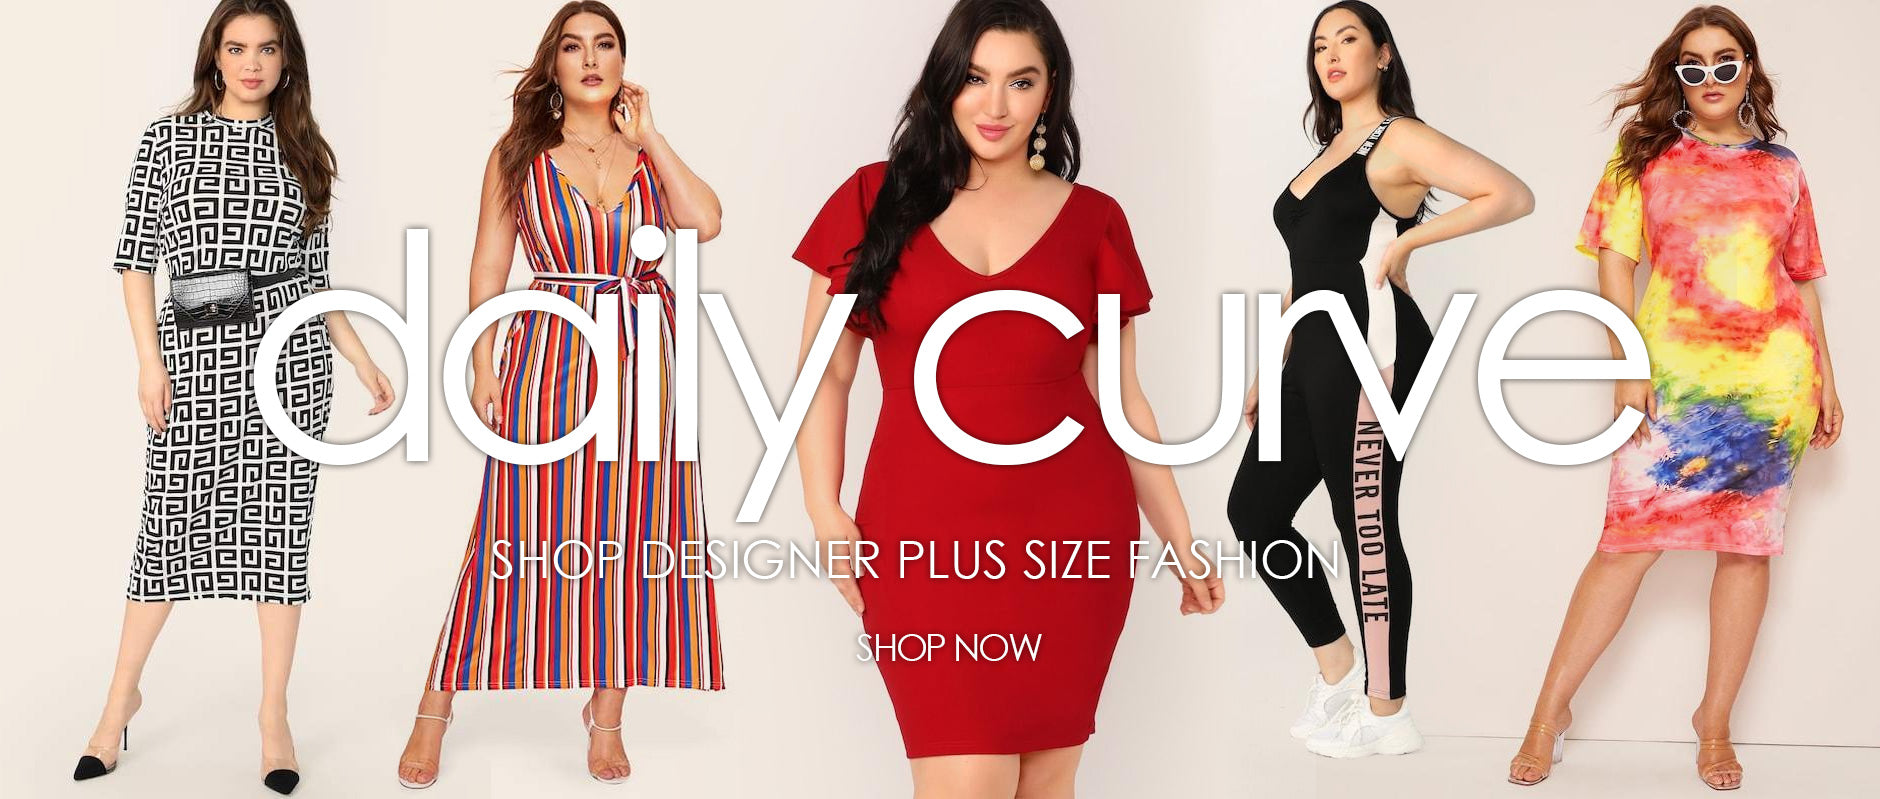 645e54987ff Welcome to Plussizefix - Shop Plus Size Clothing